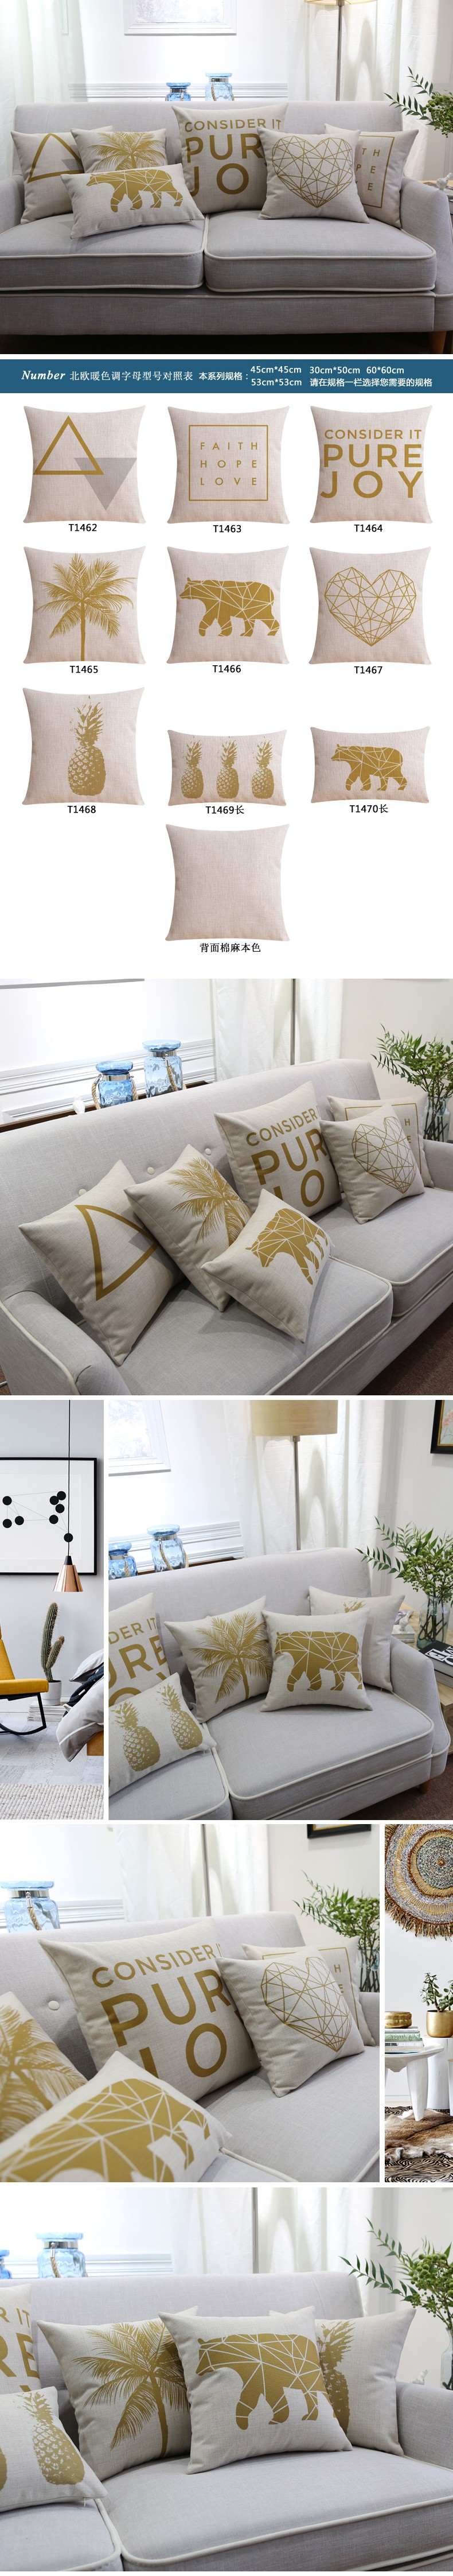 style Cushion cover Home Decor minimalist geometry pilows For